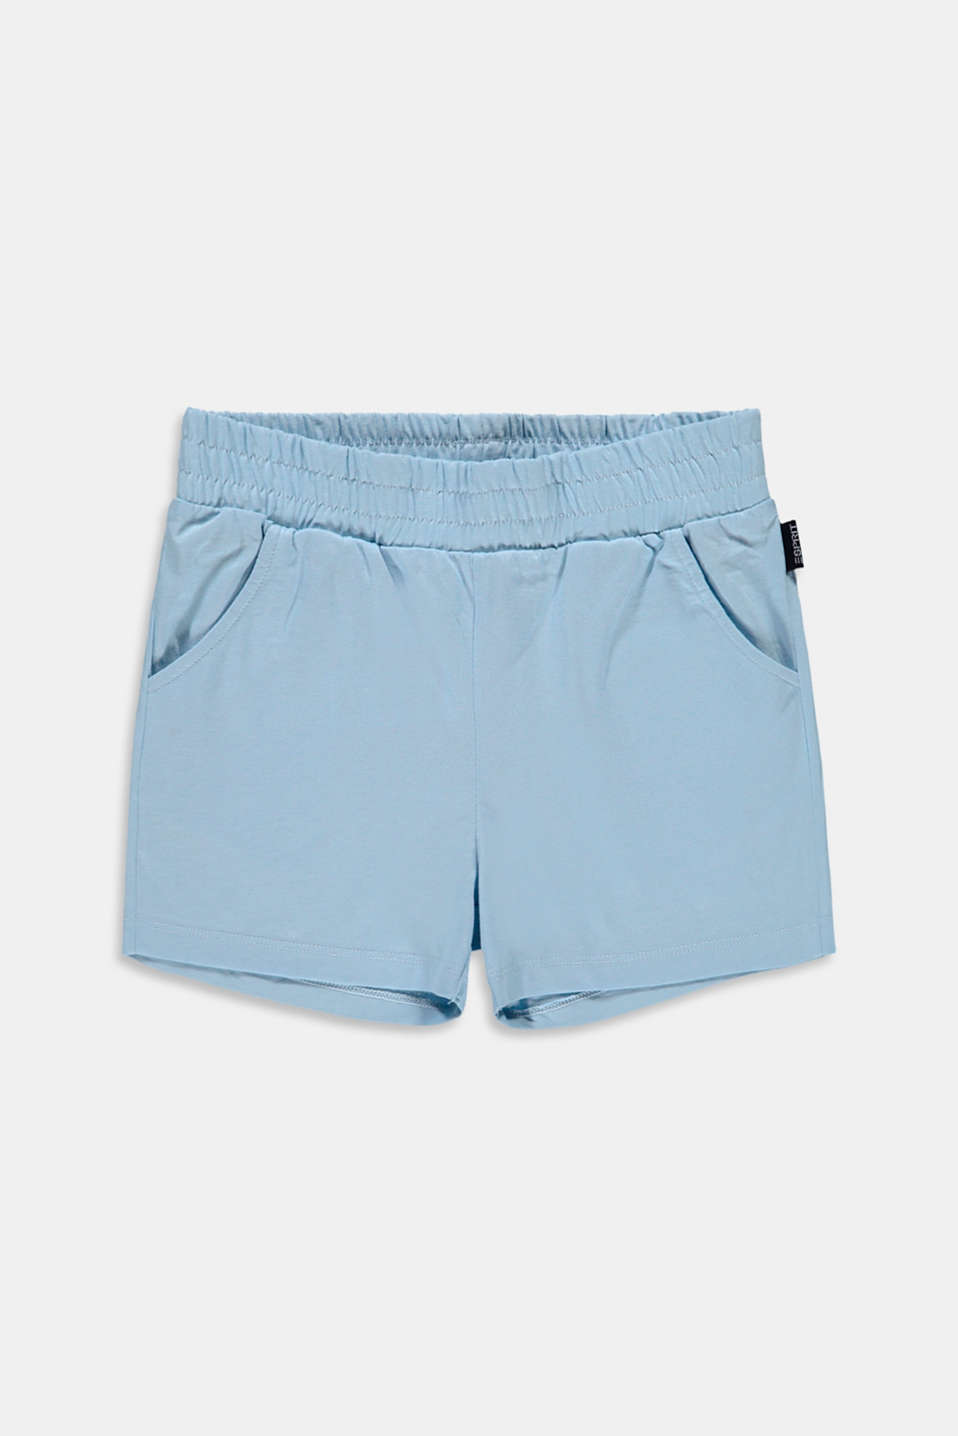 Esprit - summer shorts